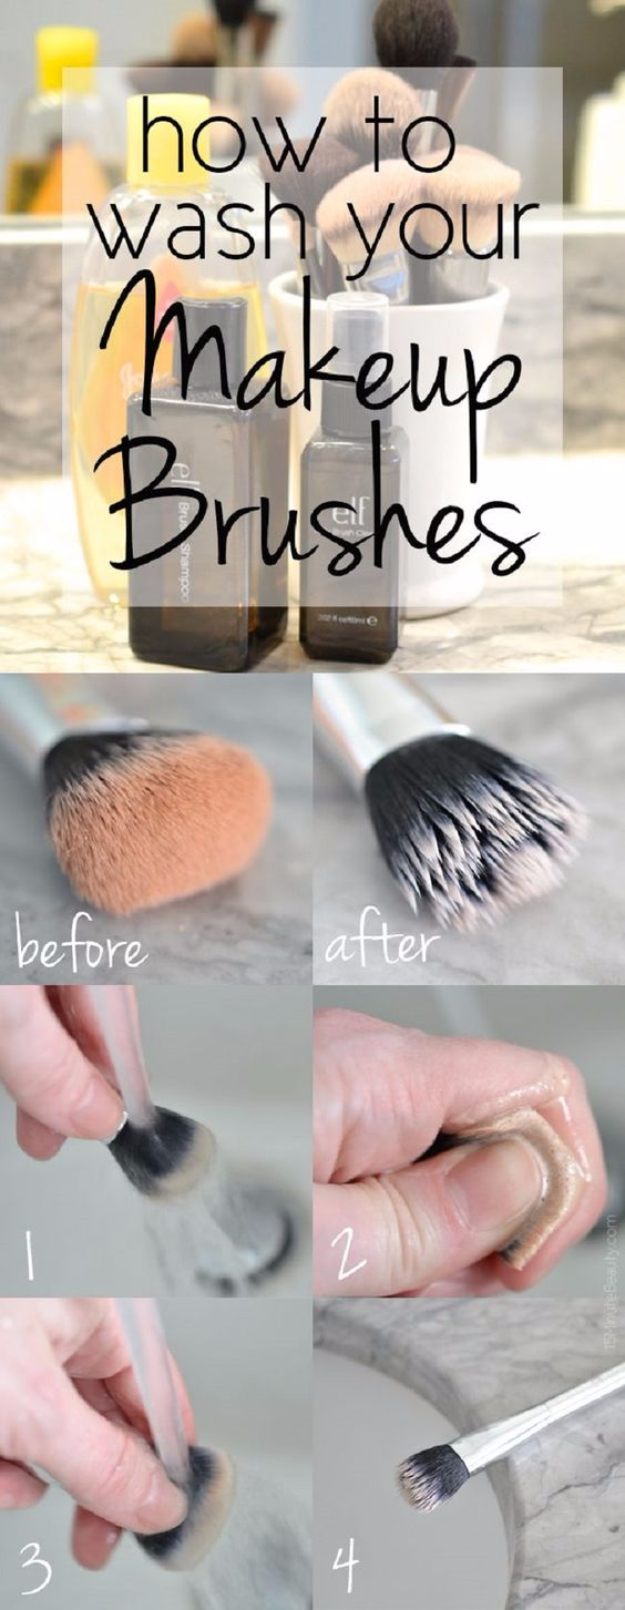 Cool DIY Makeup Hacks for Quick and Easy Beauty Ideas - Clean Makeup Brushes The Easy Way - How To Fix Broken Makeup, Tips and Tricks for Mascara and Eye Liner, Lipstick and Foundation Tutorials - Fast Do It Yourself Beauty Projects for Women